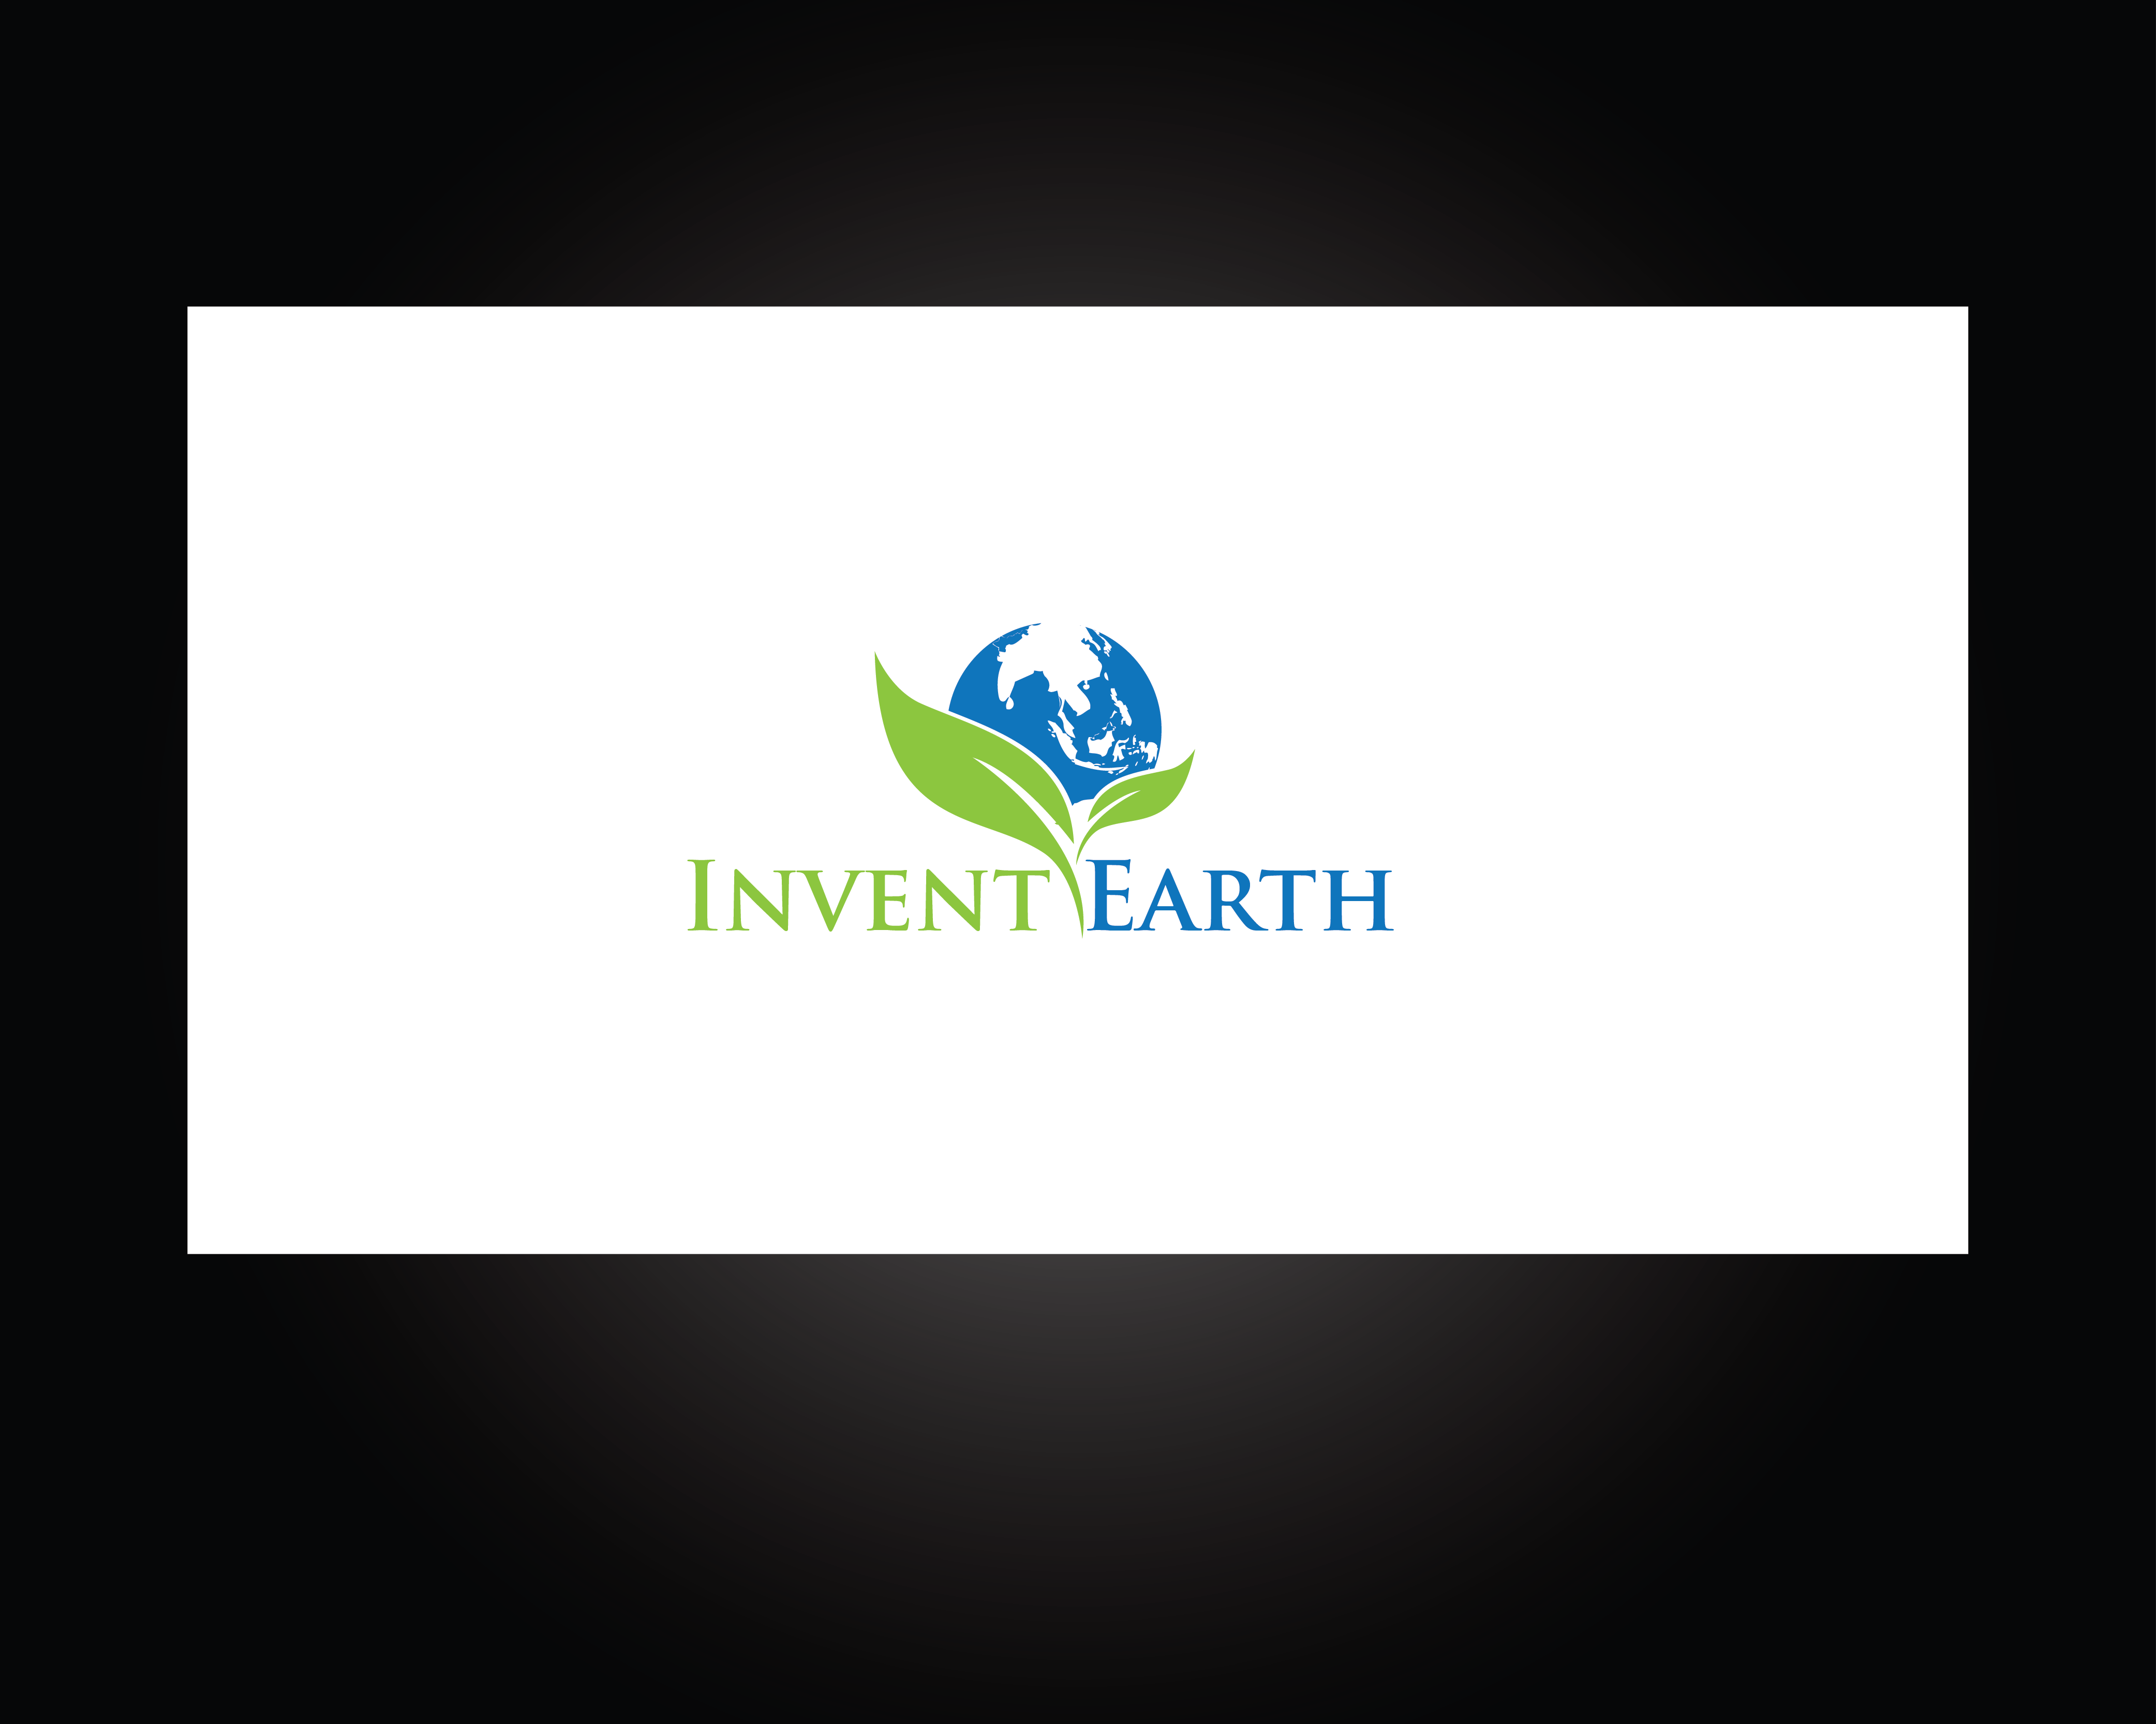 Logo Design by roc - Entry No. 1 in the Logo Design Contest Artistic Logo Design for Invent Earth.